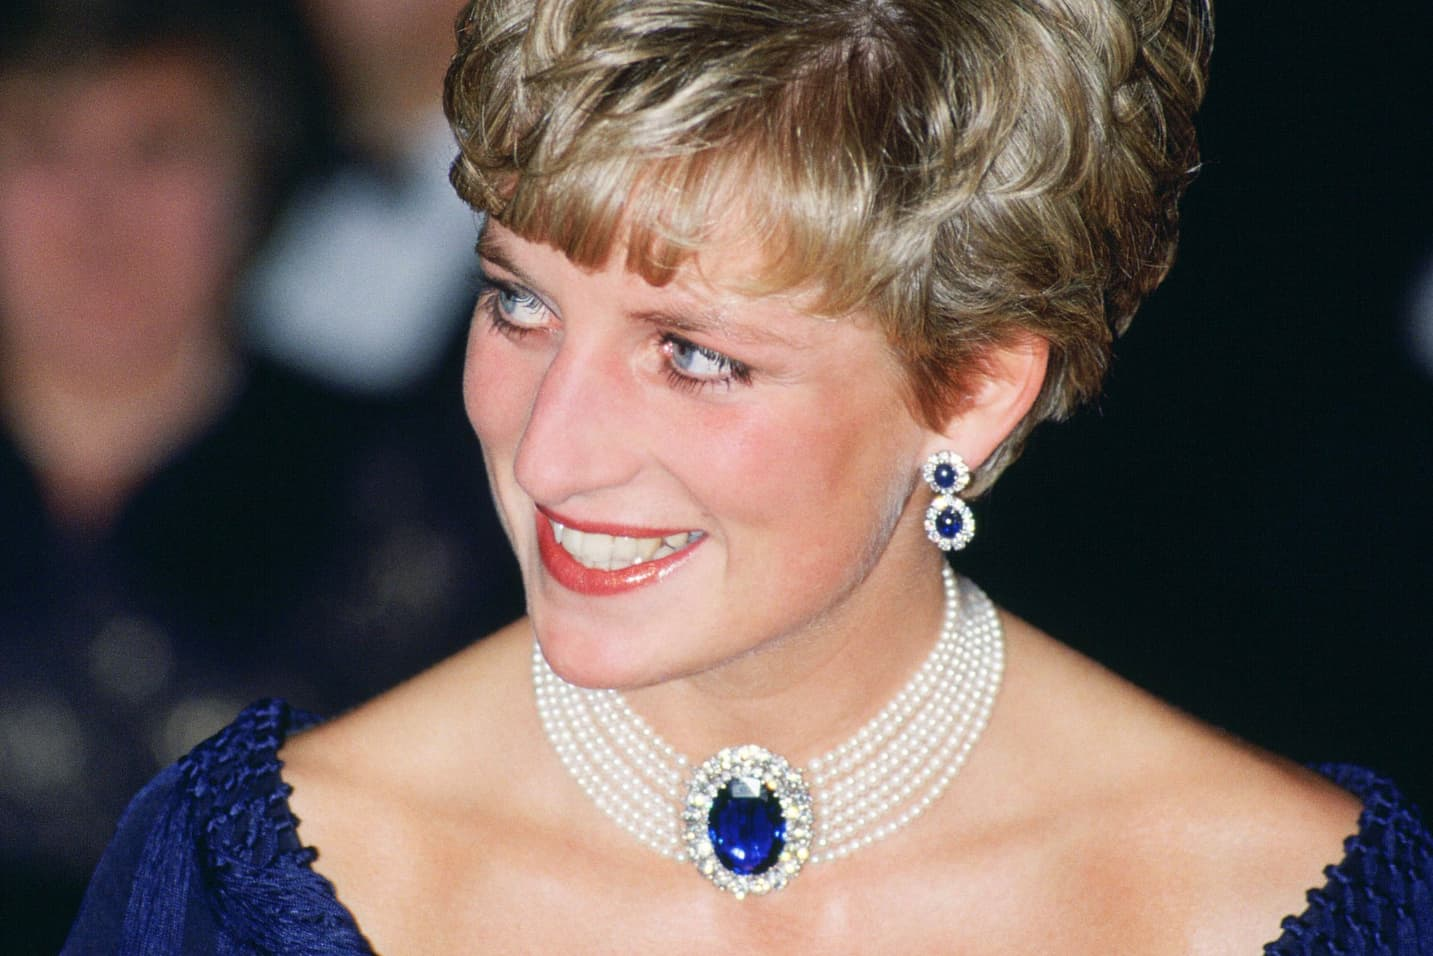 Princess Diana wearing her seven strand pearl choker with sapphire and diamond clap, and earrings with sapphires and diamonds